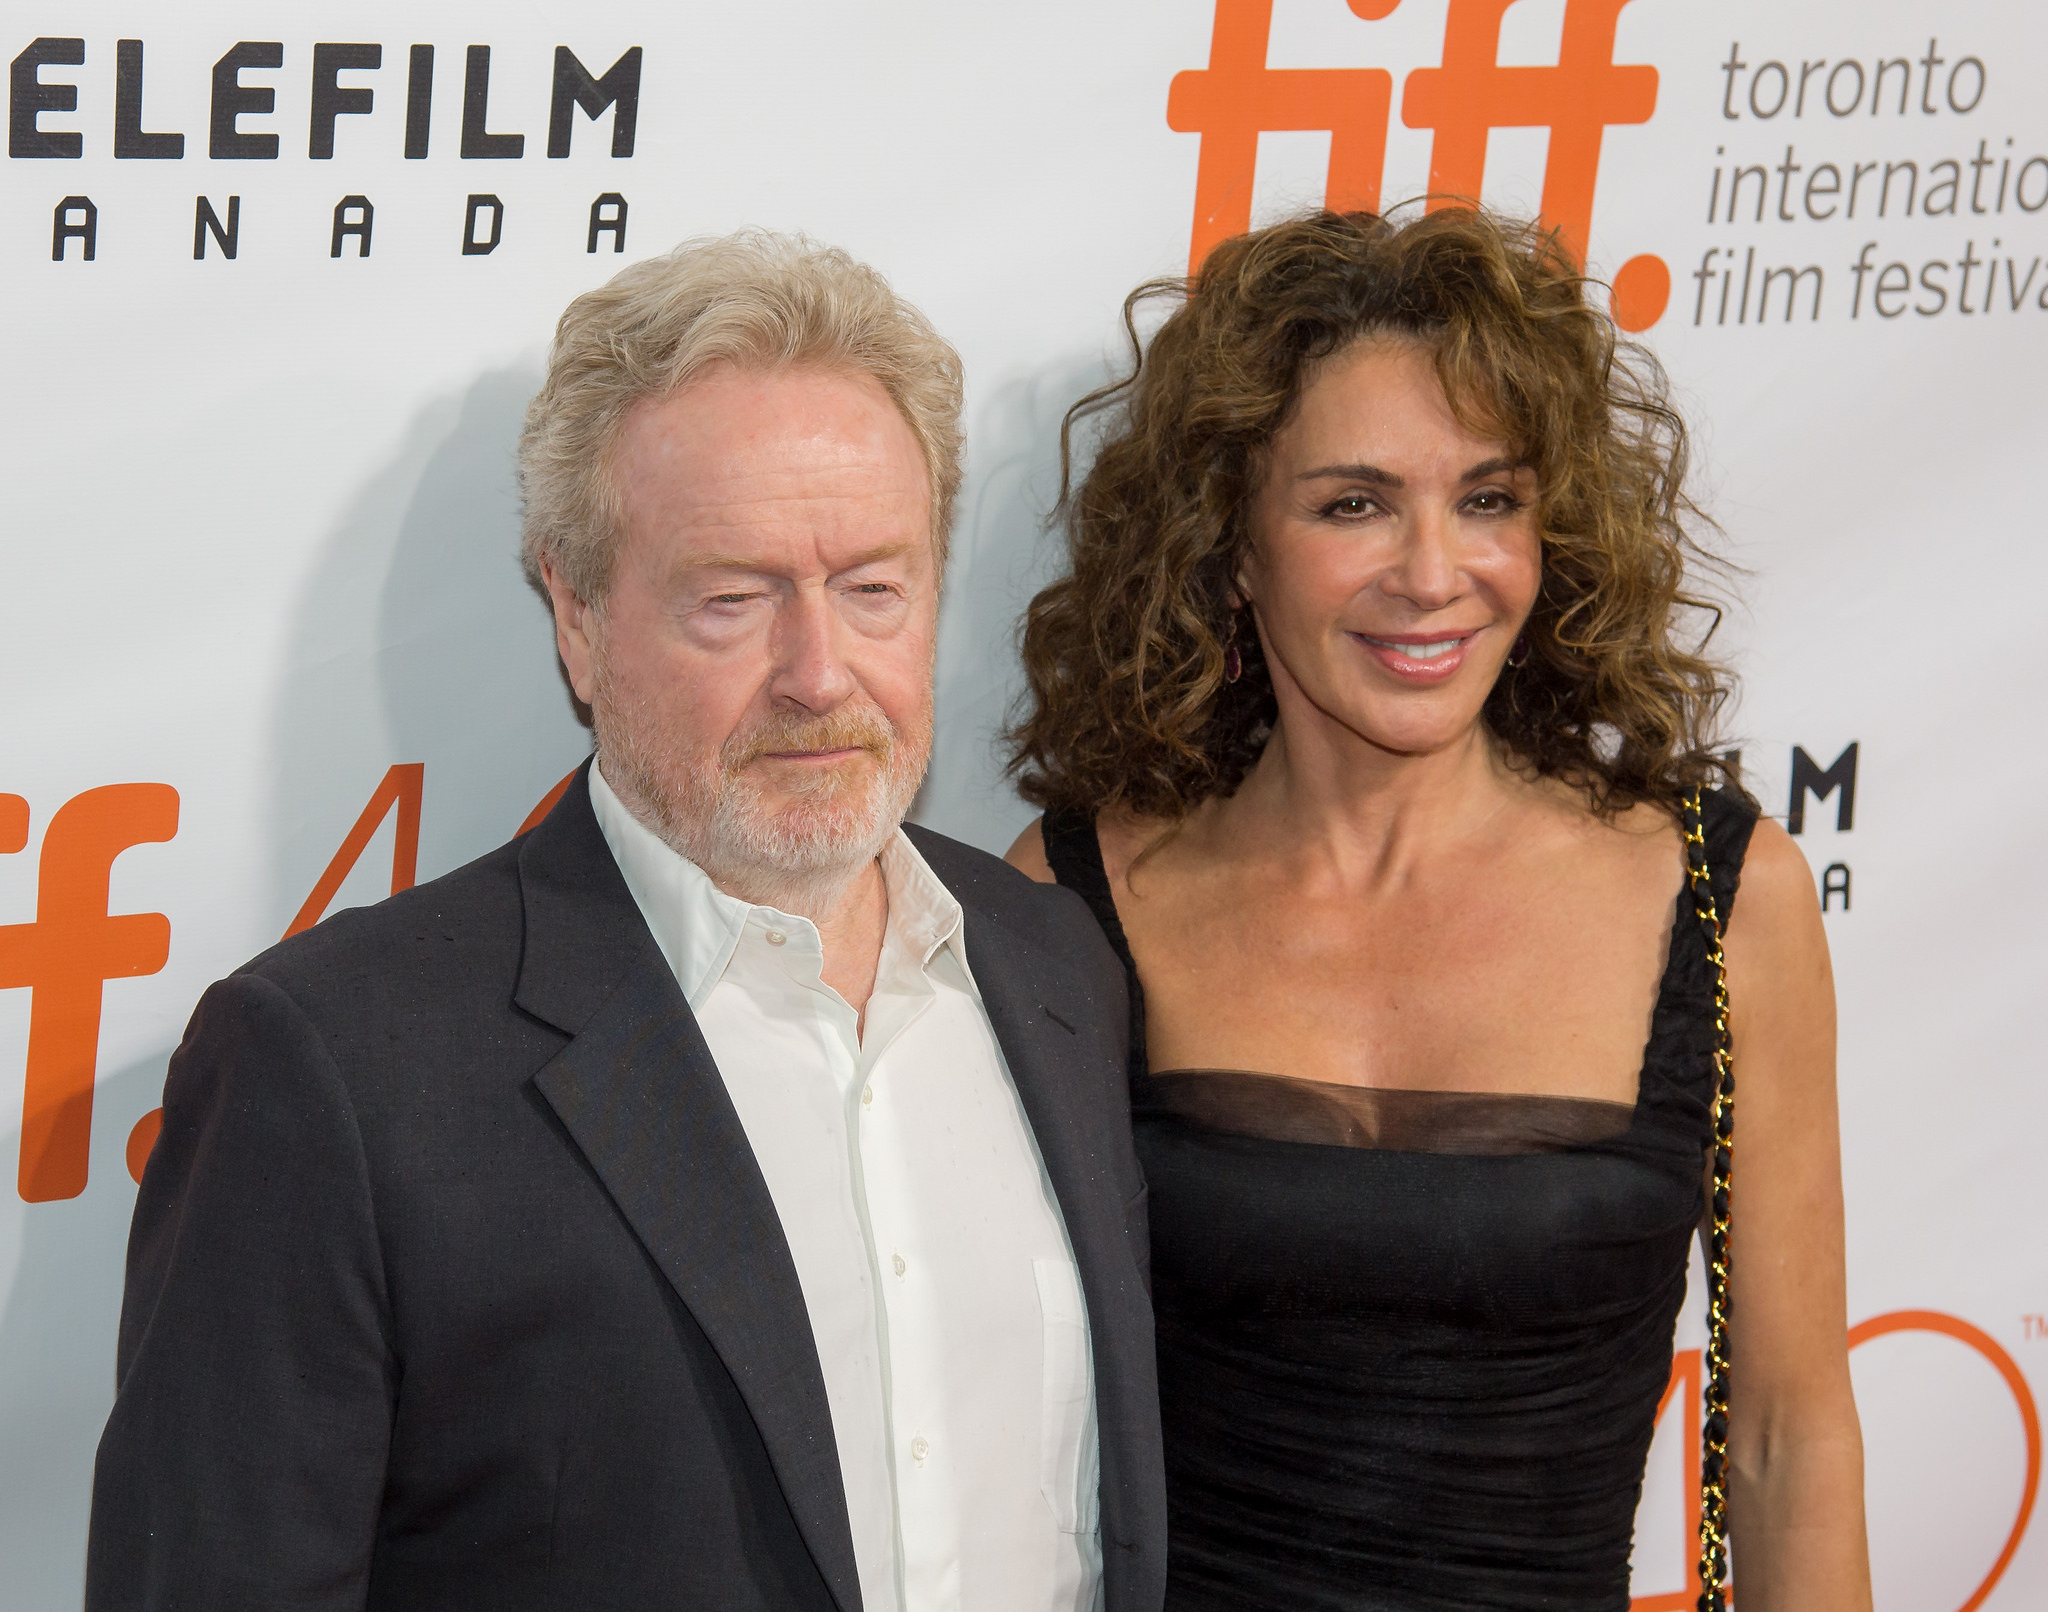 Director Ridley Scott at